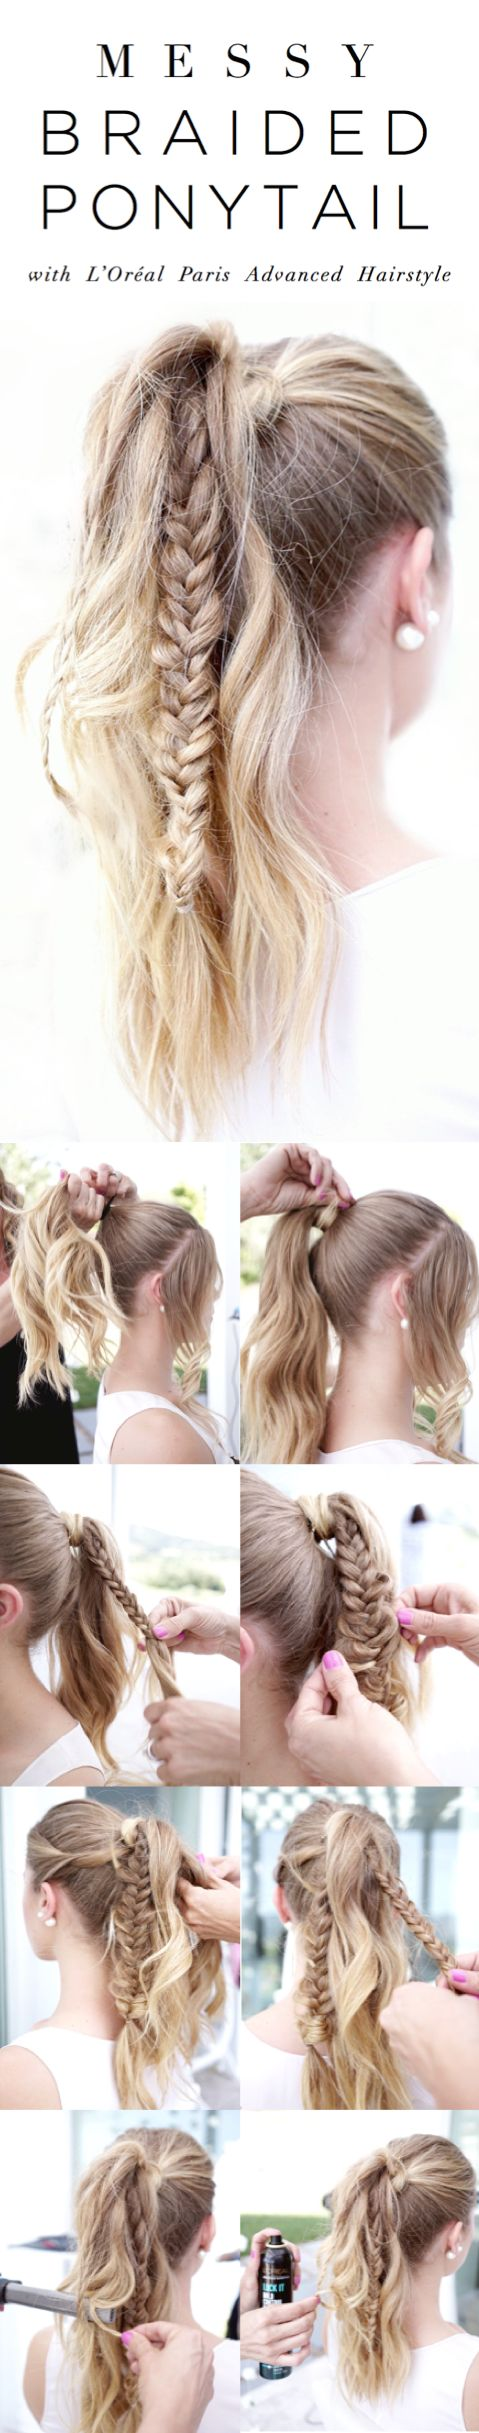 Wavy, braided ponytail for long hair on @Vogueinvines. 1 Gather hair into high ponytail. 2 Gather small piece of hair from underneath, wrap around base of ponytail, and secure with bobby pin. 3 Gather small section of hair on one side of ponytail and braid all the way down. 4 Using fingers, pull on braid to widen. 5 Repeat with another section of hair on other side. 6 With a ribbon curling iron, curl small sections of hair throughout ponytail. 7 Finish with Lock It Weather Control Hairspray.